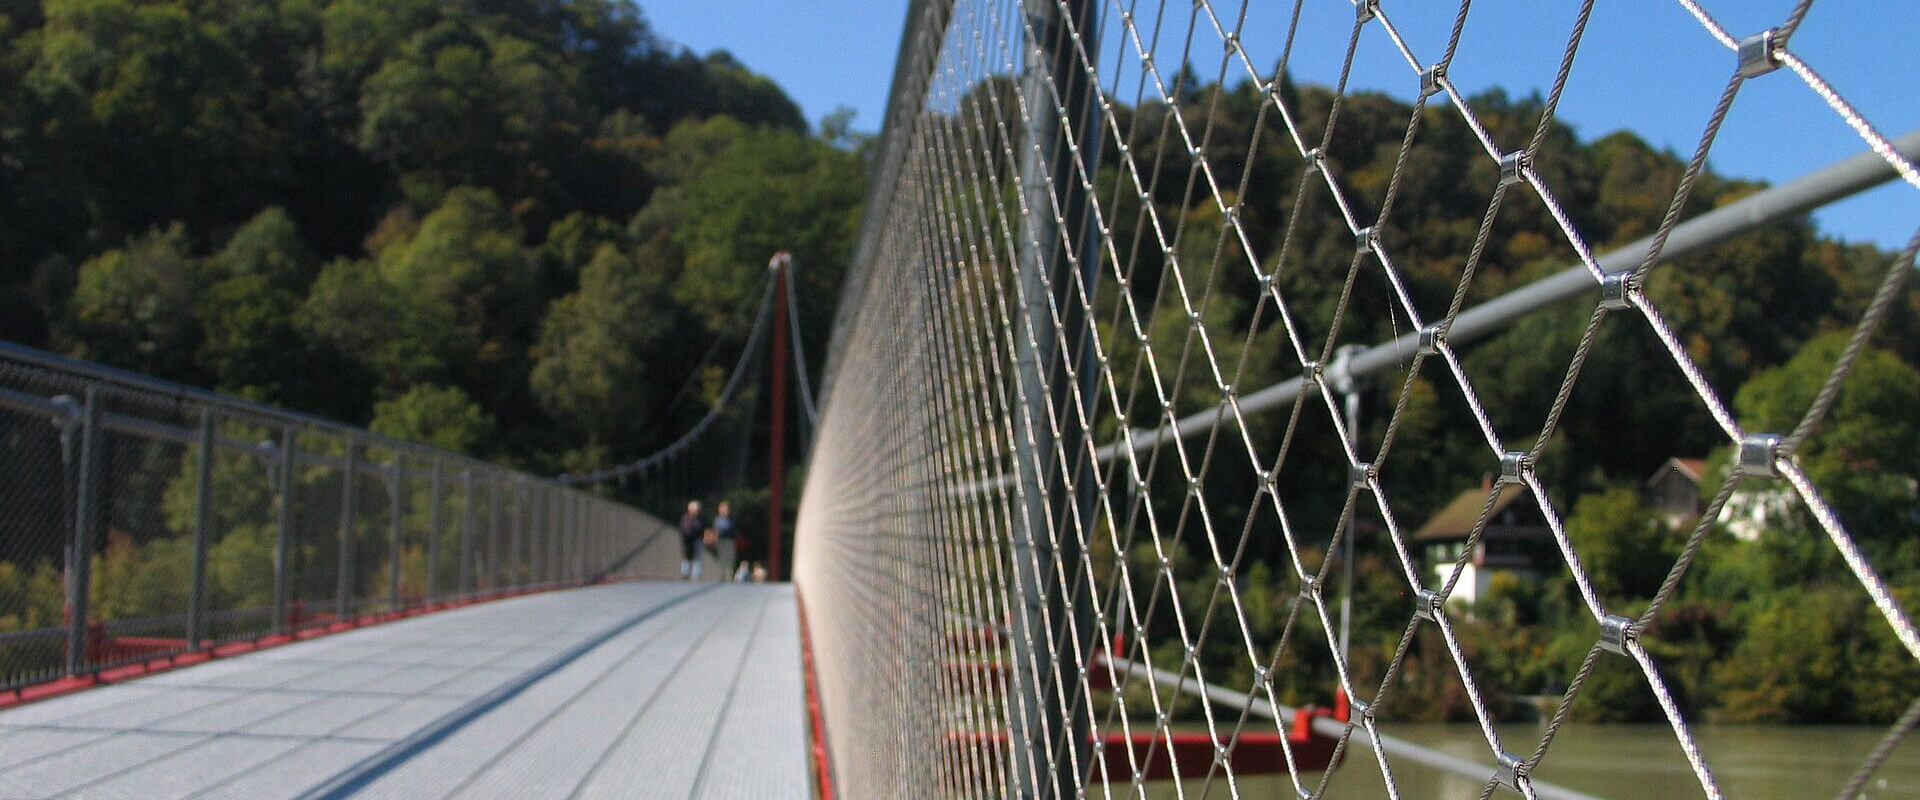 Architectural rope mesh netting